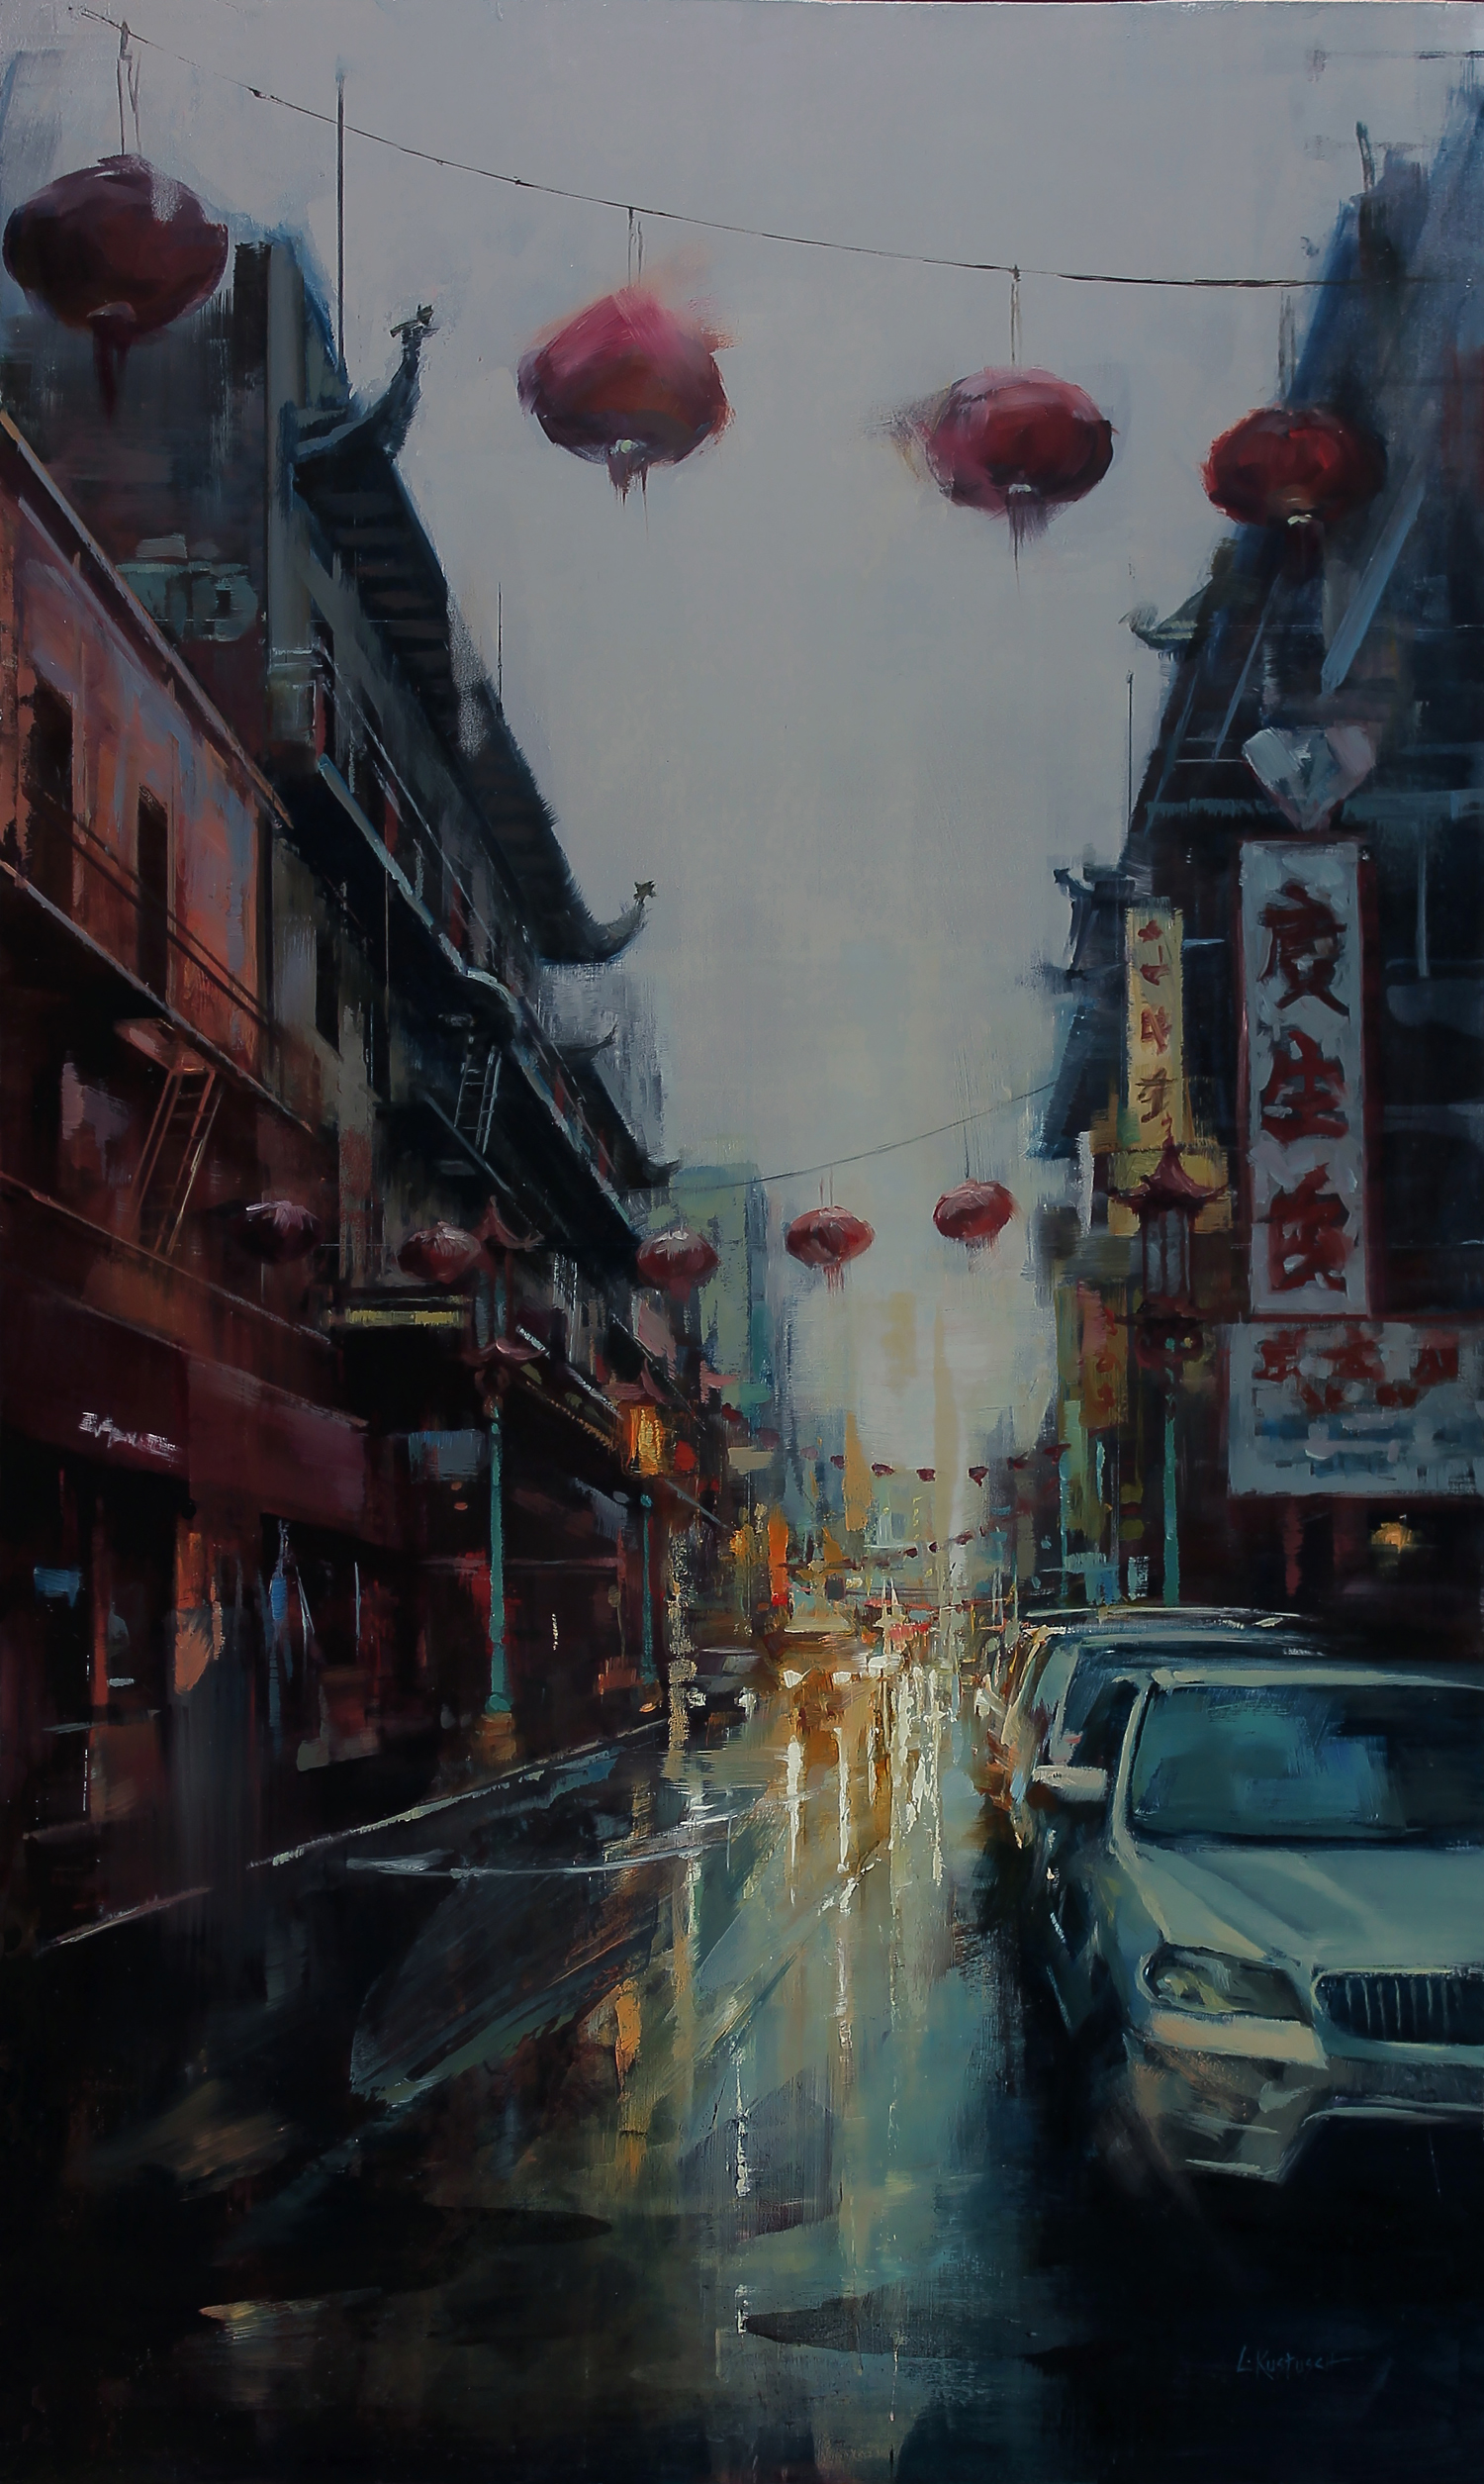 Reflections of Chinatown